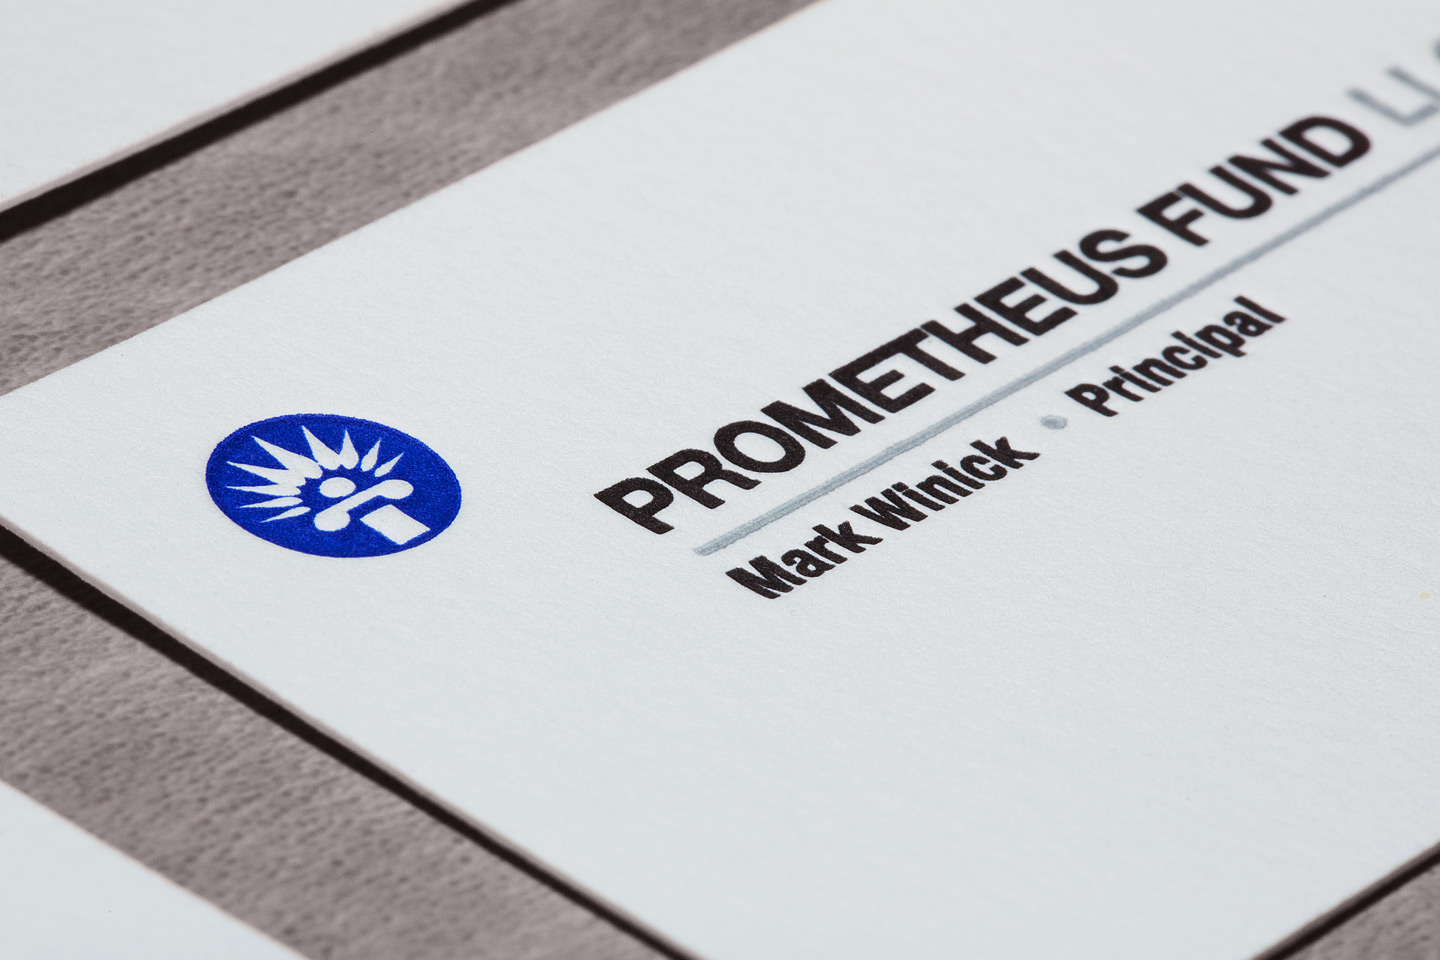 a prometheus fund llc letterpress business card close-up